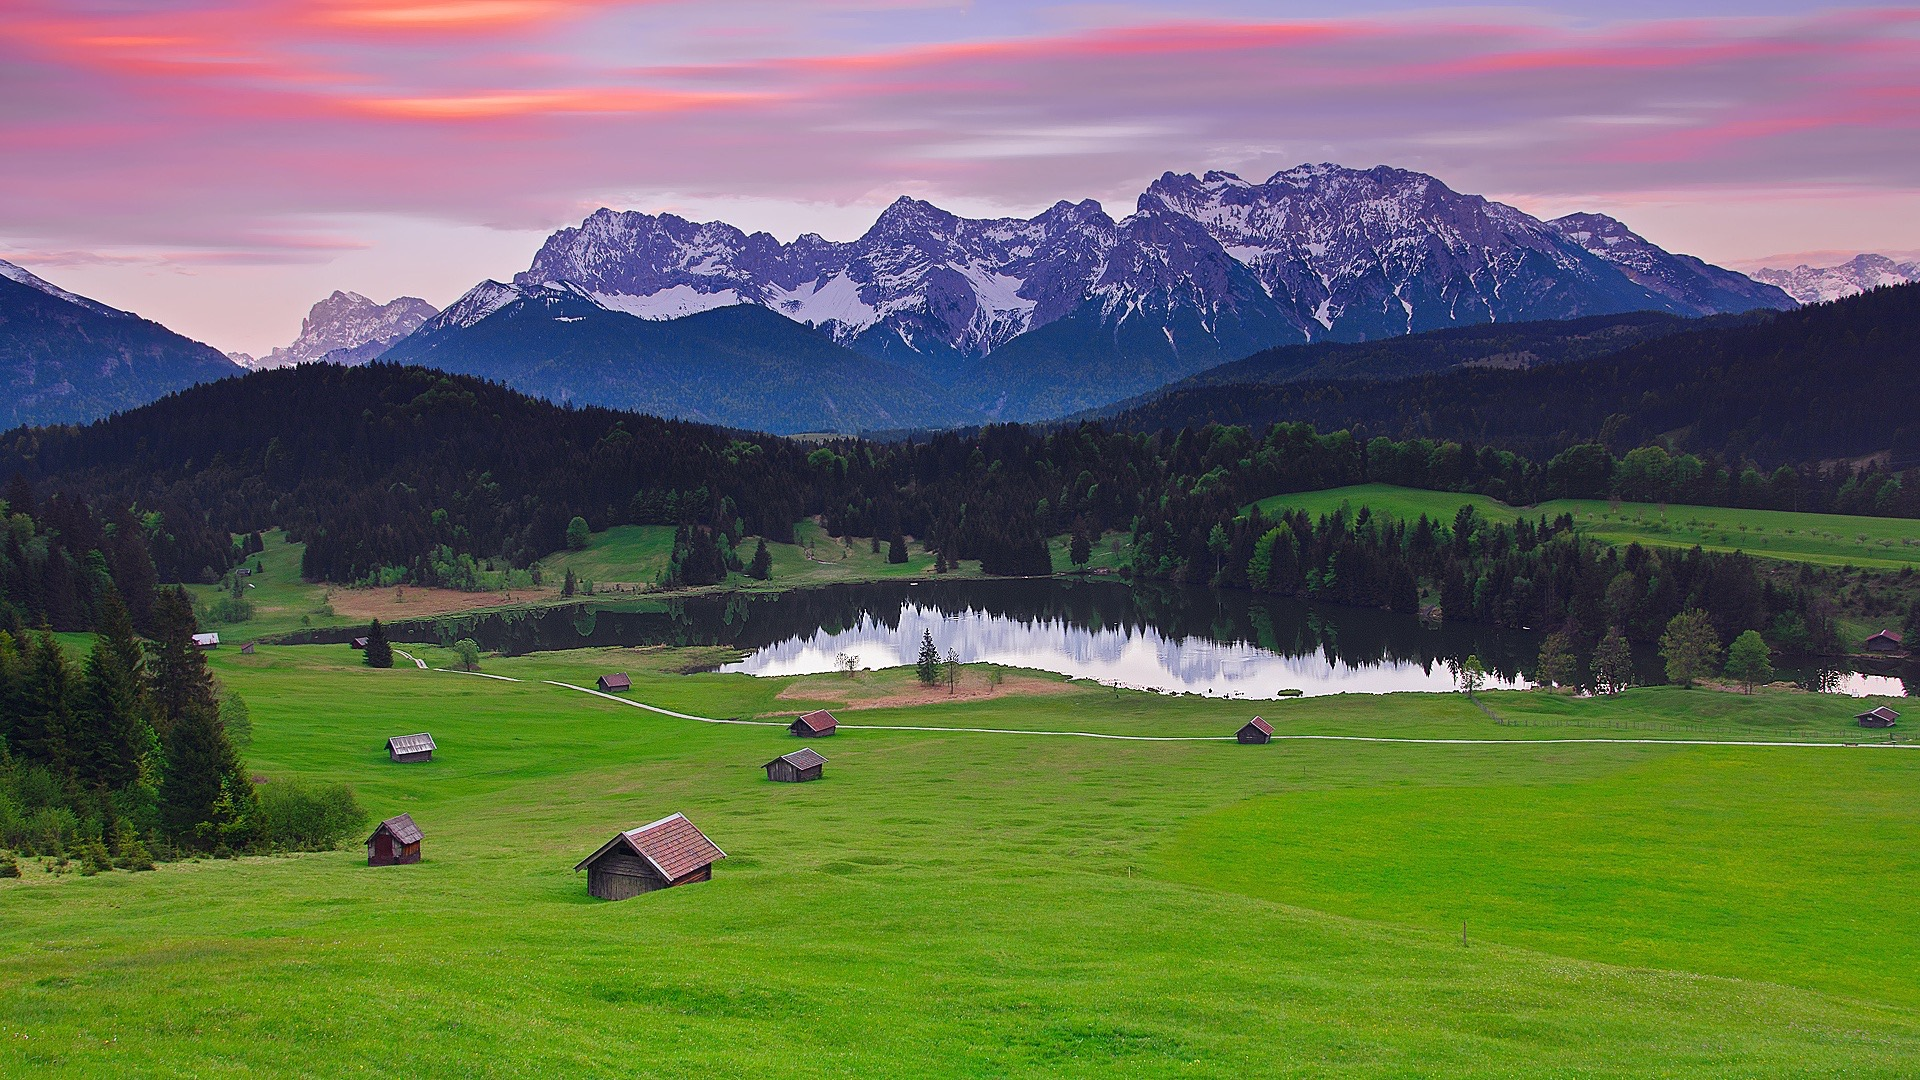 Germany-Bavaria-landscape-mountains-alps-forest-grass-houses-lake_1920x1080.jpg